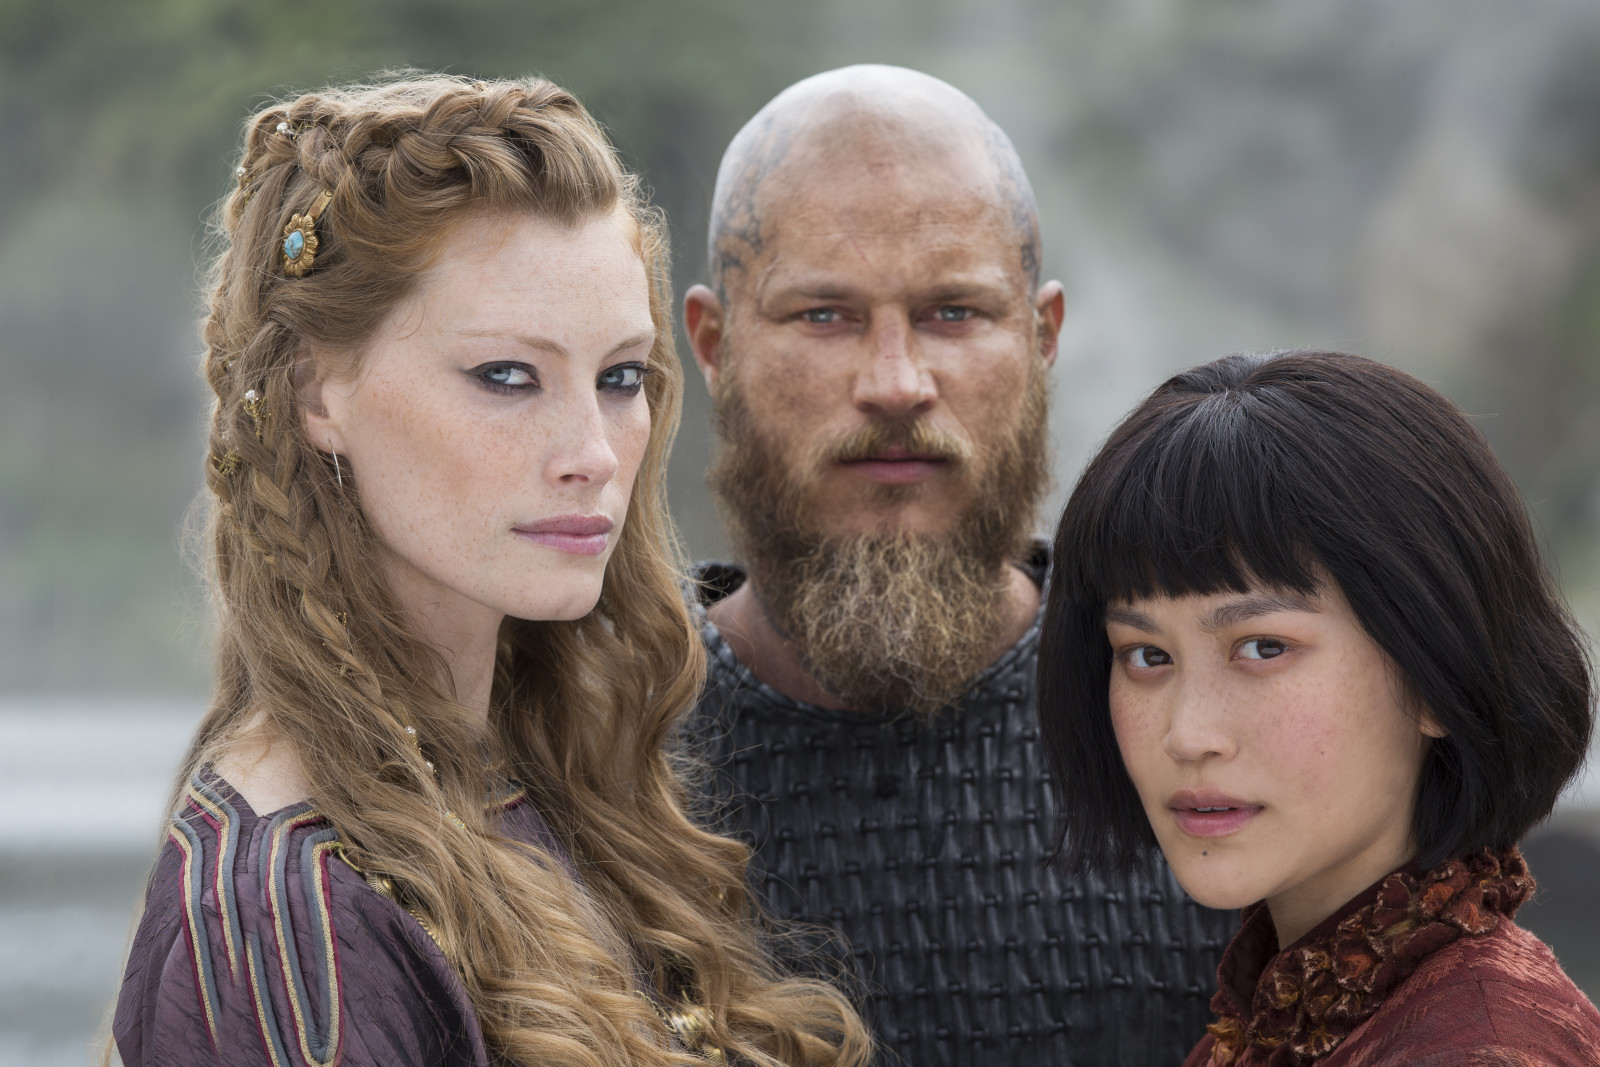 Vikings Season 4 Aslaug, Ragnar Lothbrok and Yidu Official Picture